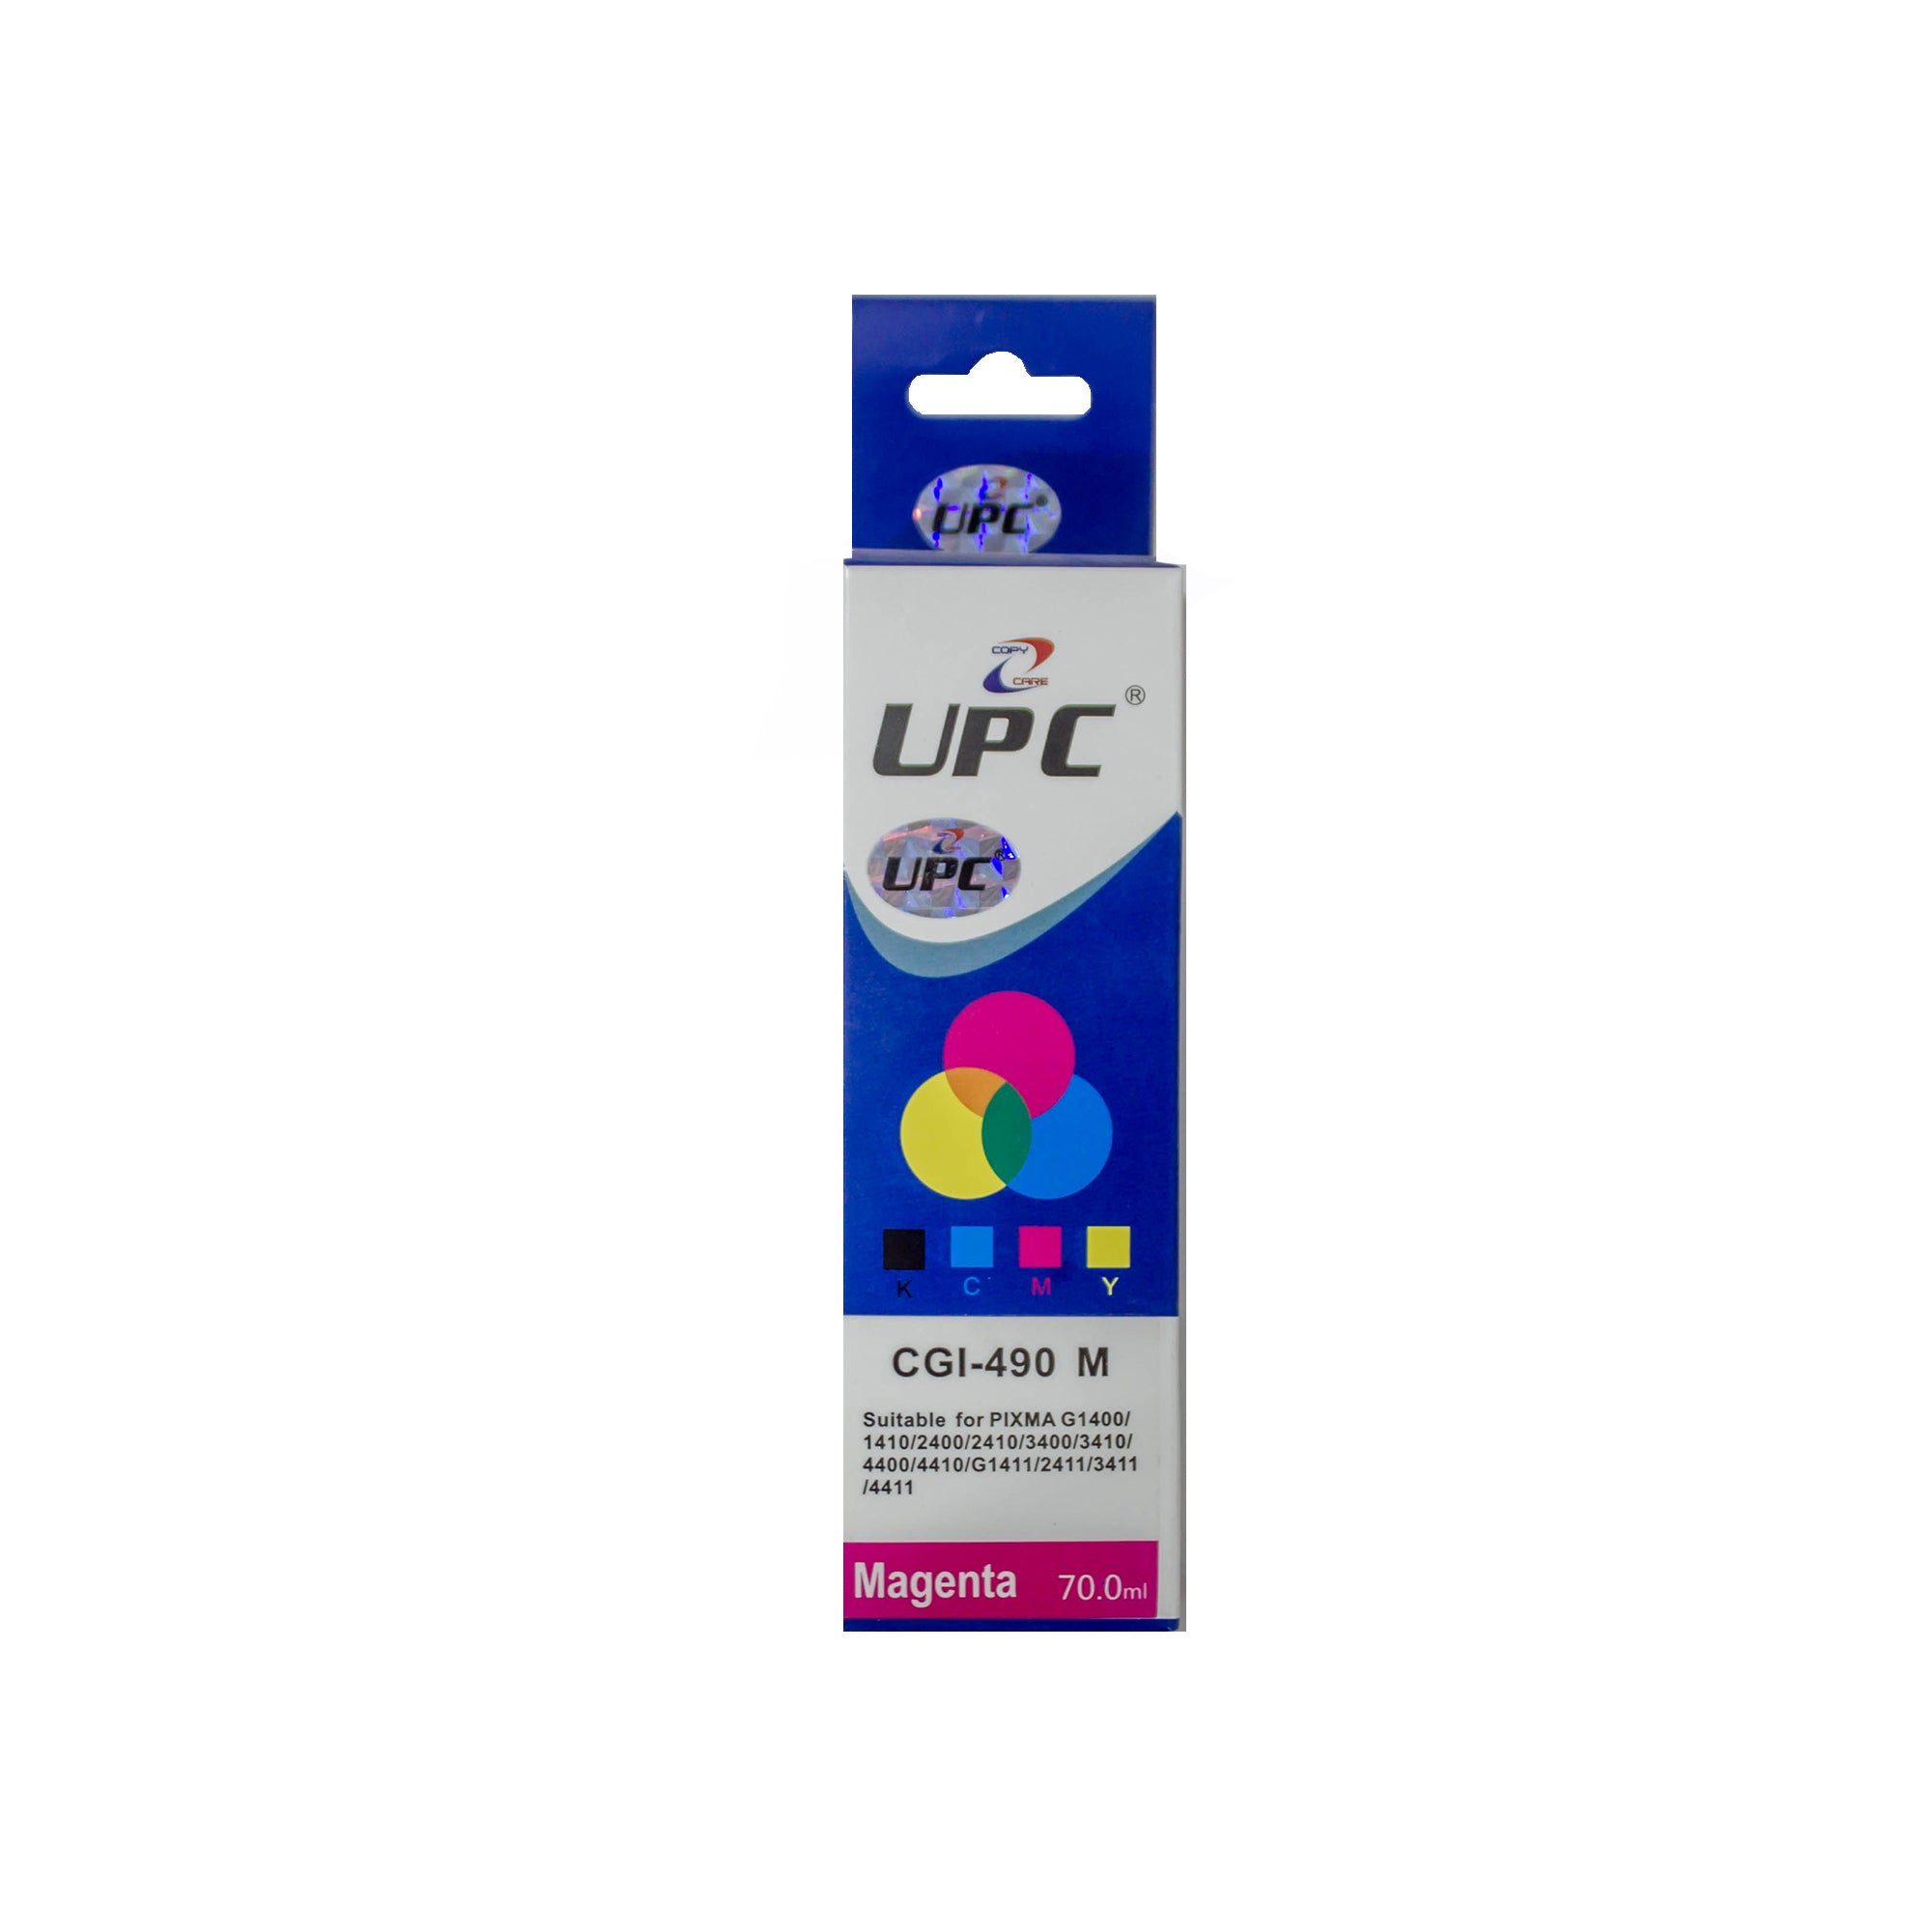 UPC GI-490 Magenta Compatible Ink Bottle Replacement For Canon Printers